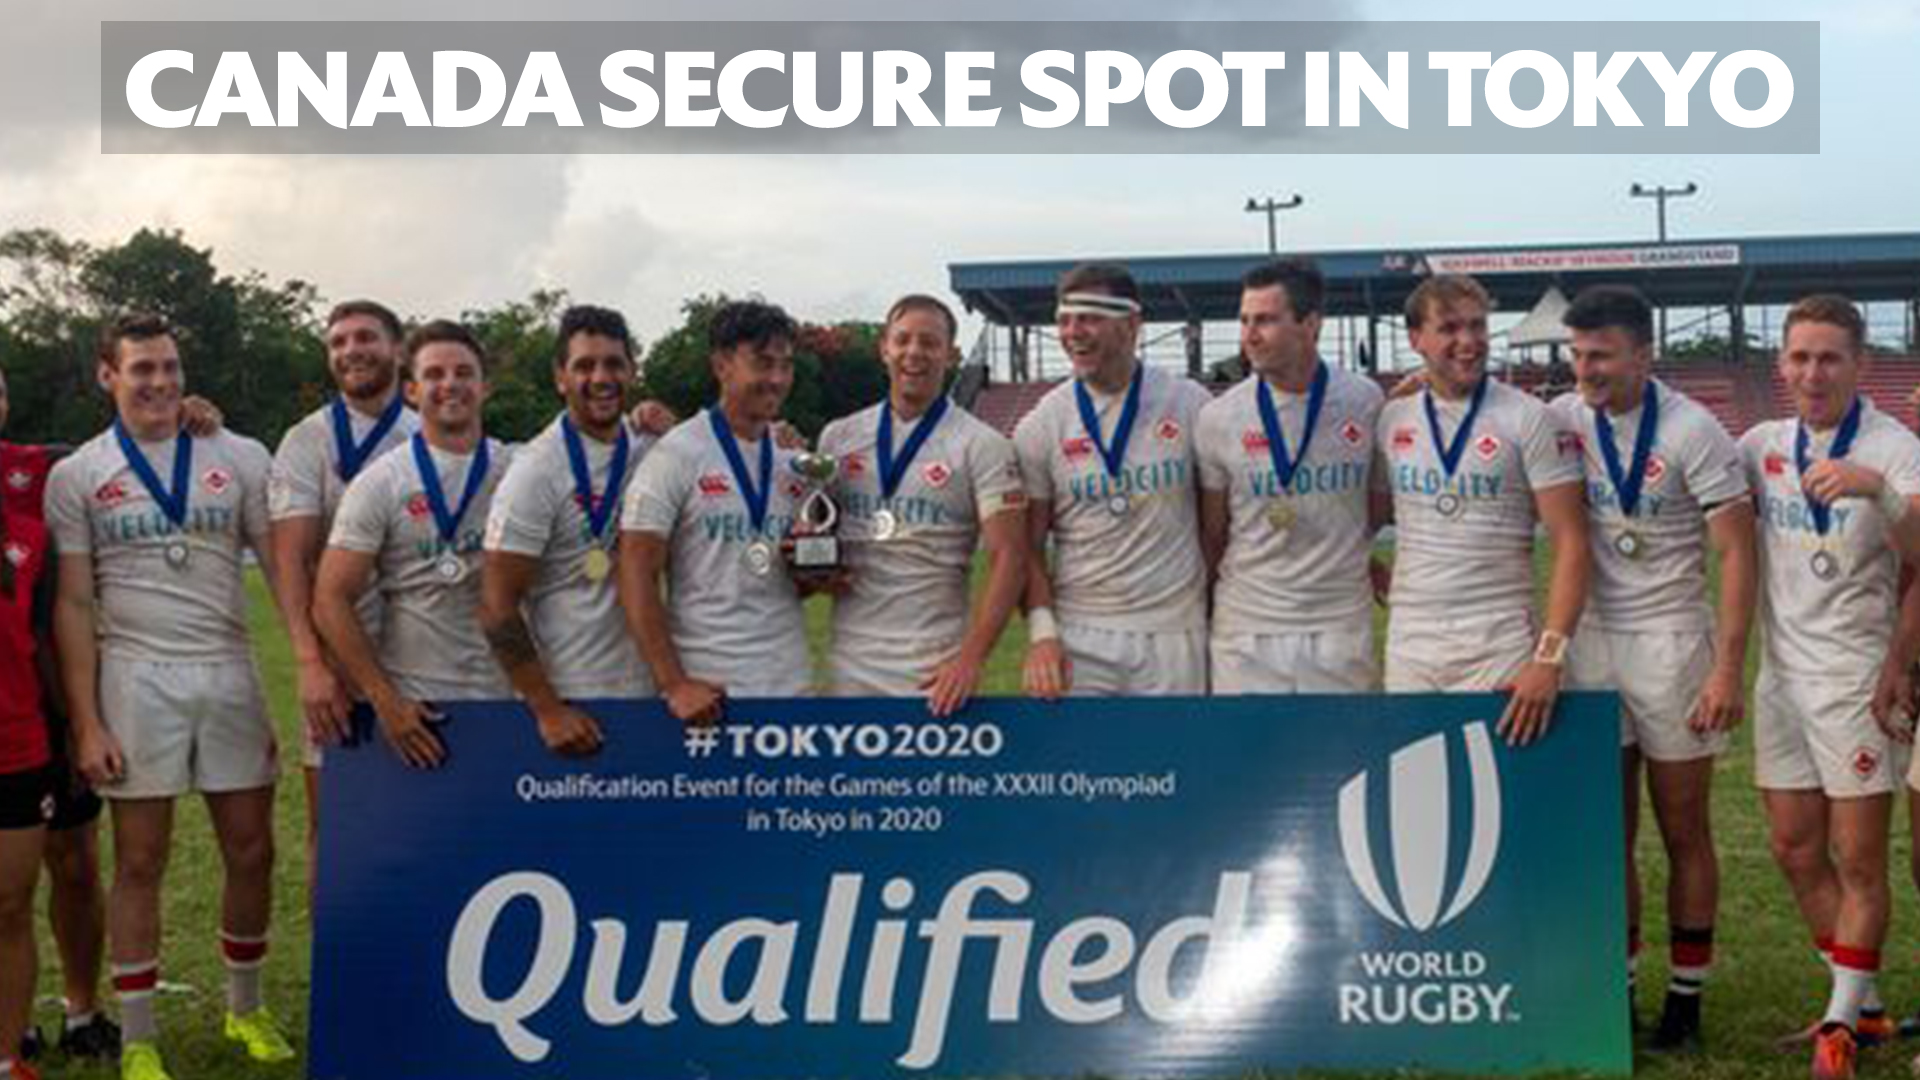 Canada secure their spot at Tokyo 2020